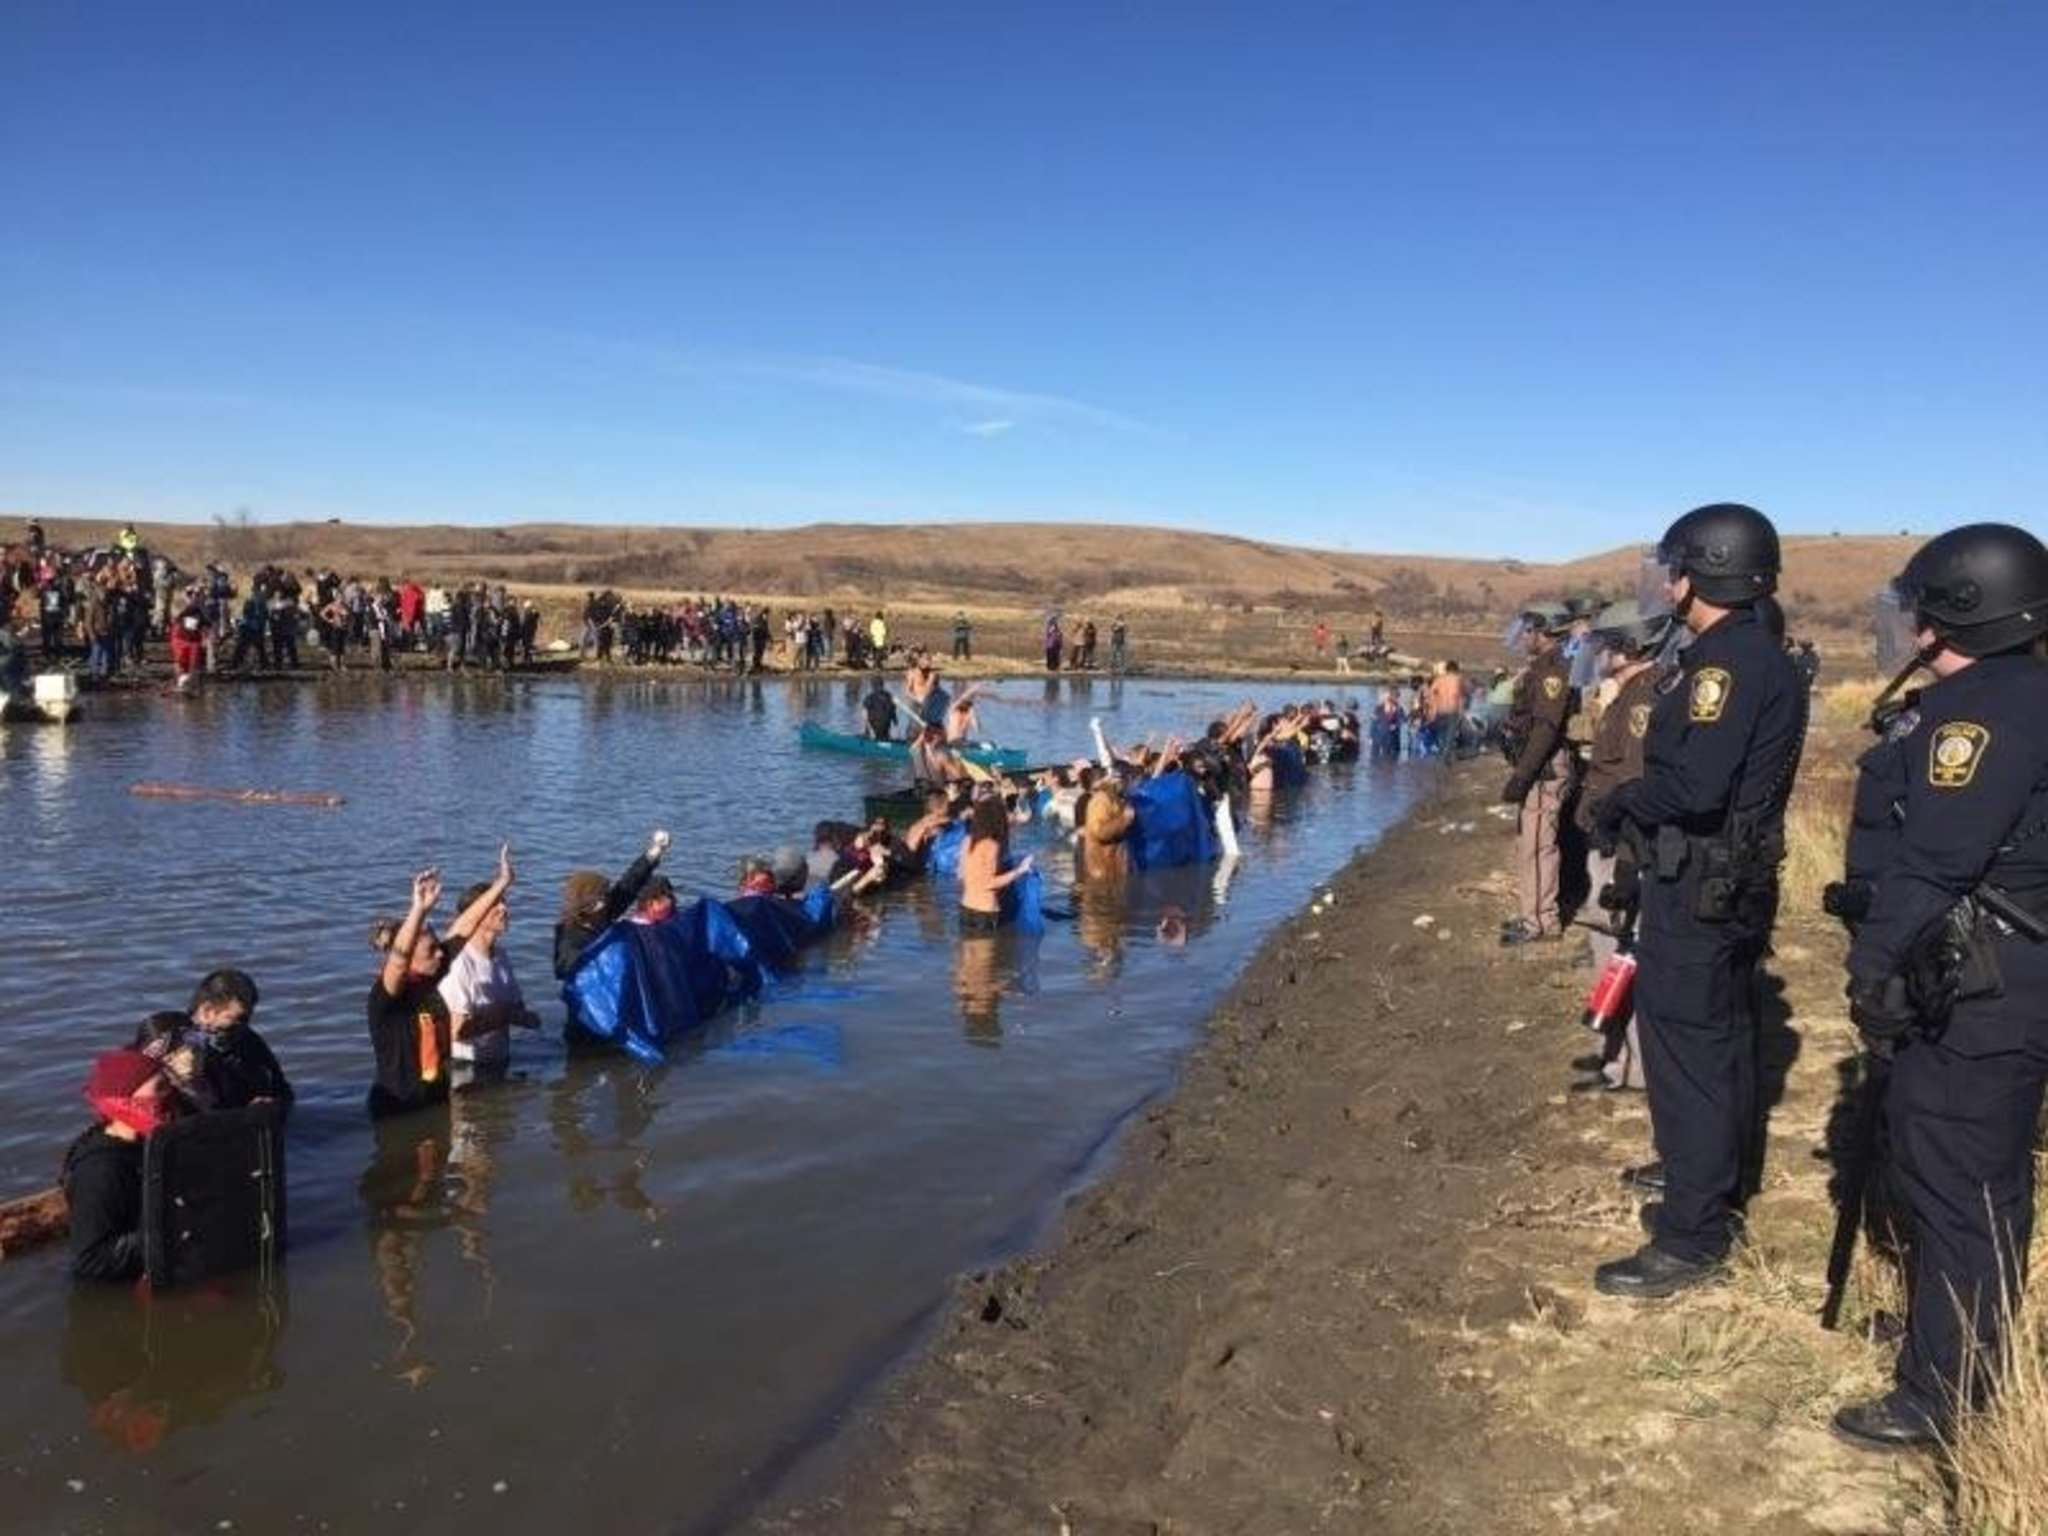 MORTON COUNTY SHERIFF'S OFFICE / TNS</p><p>Police face tribal members from across the country and their supporters protesting against the Dakota Access Pipeline in Standing Rock, N.D. </p>